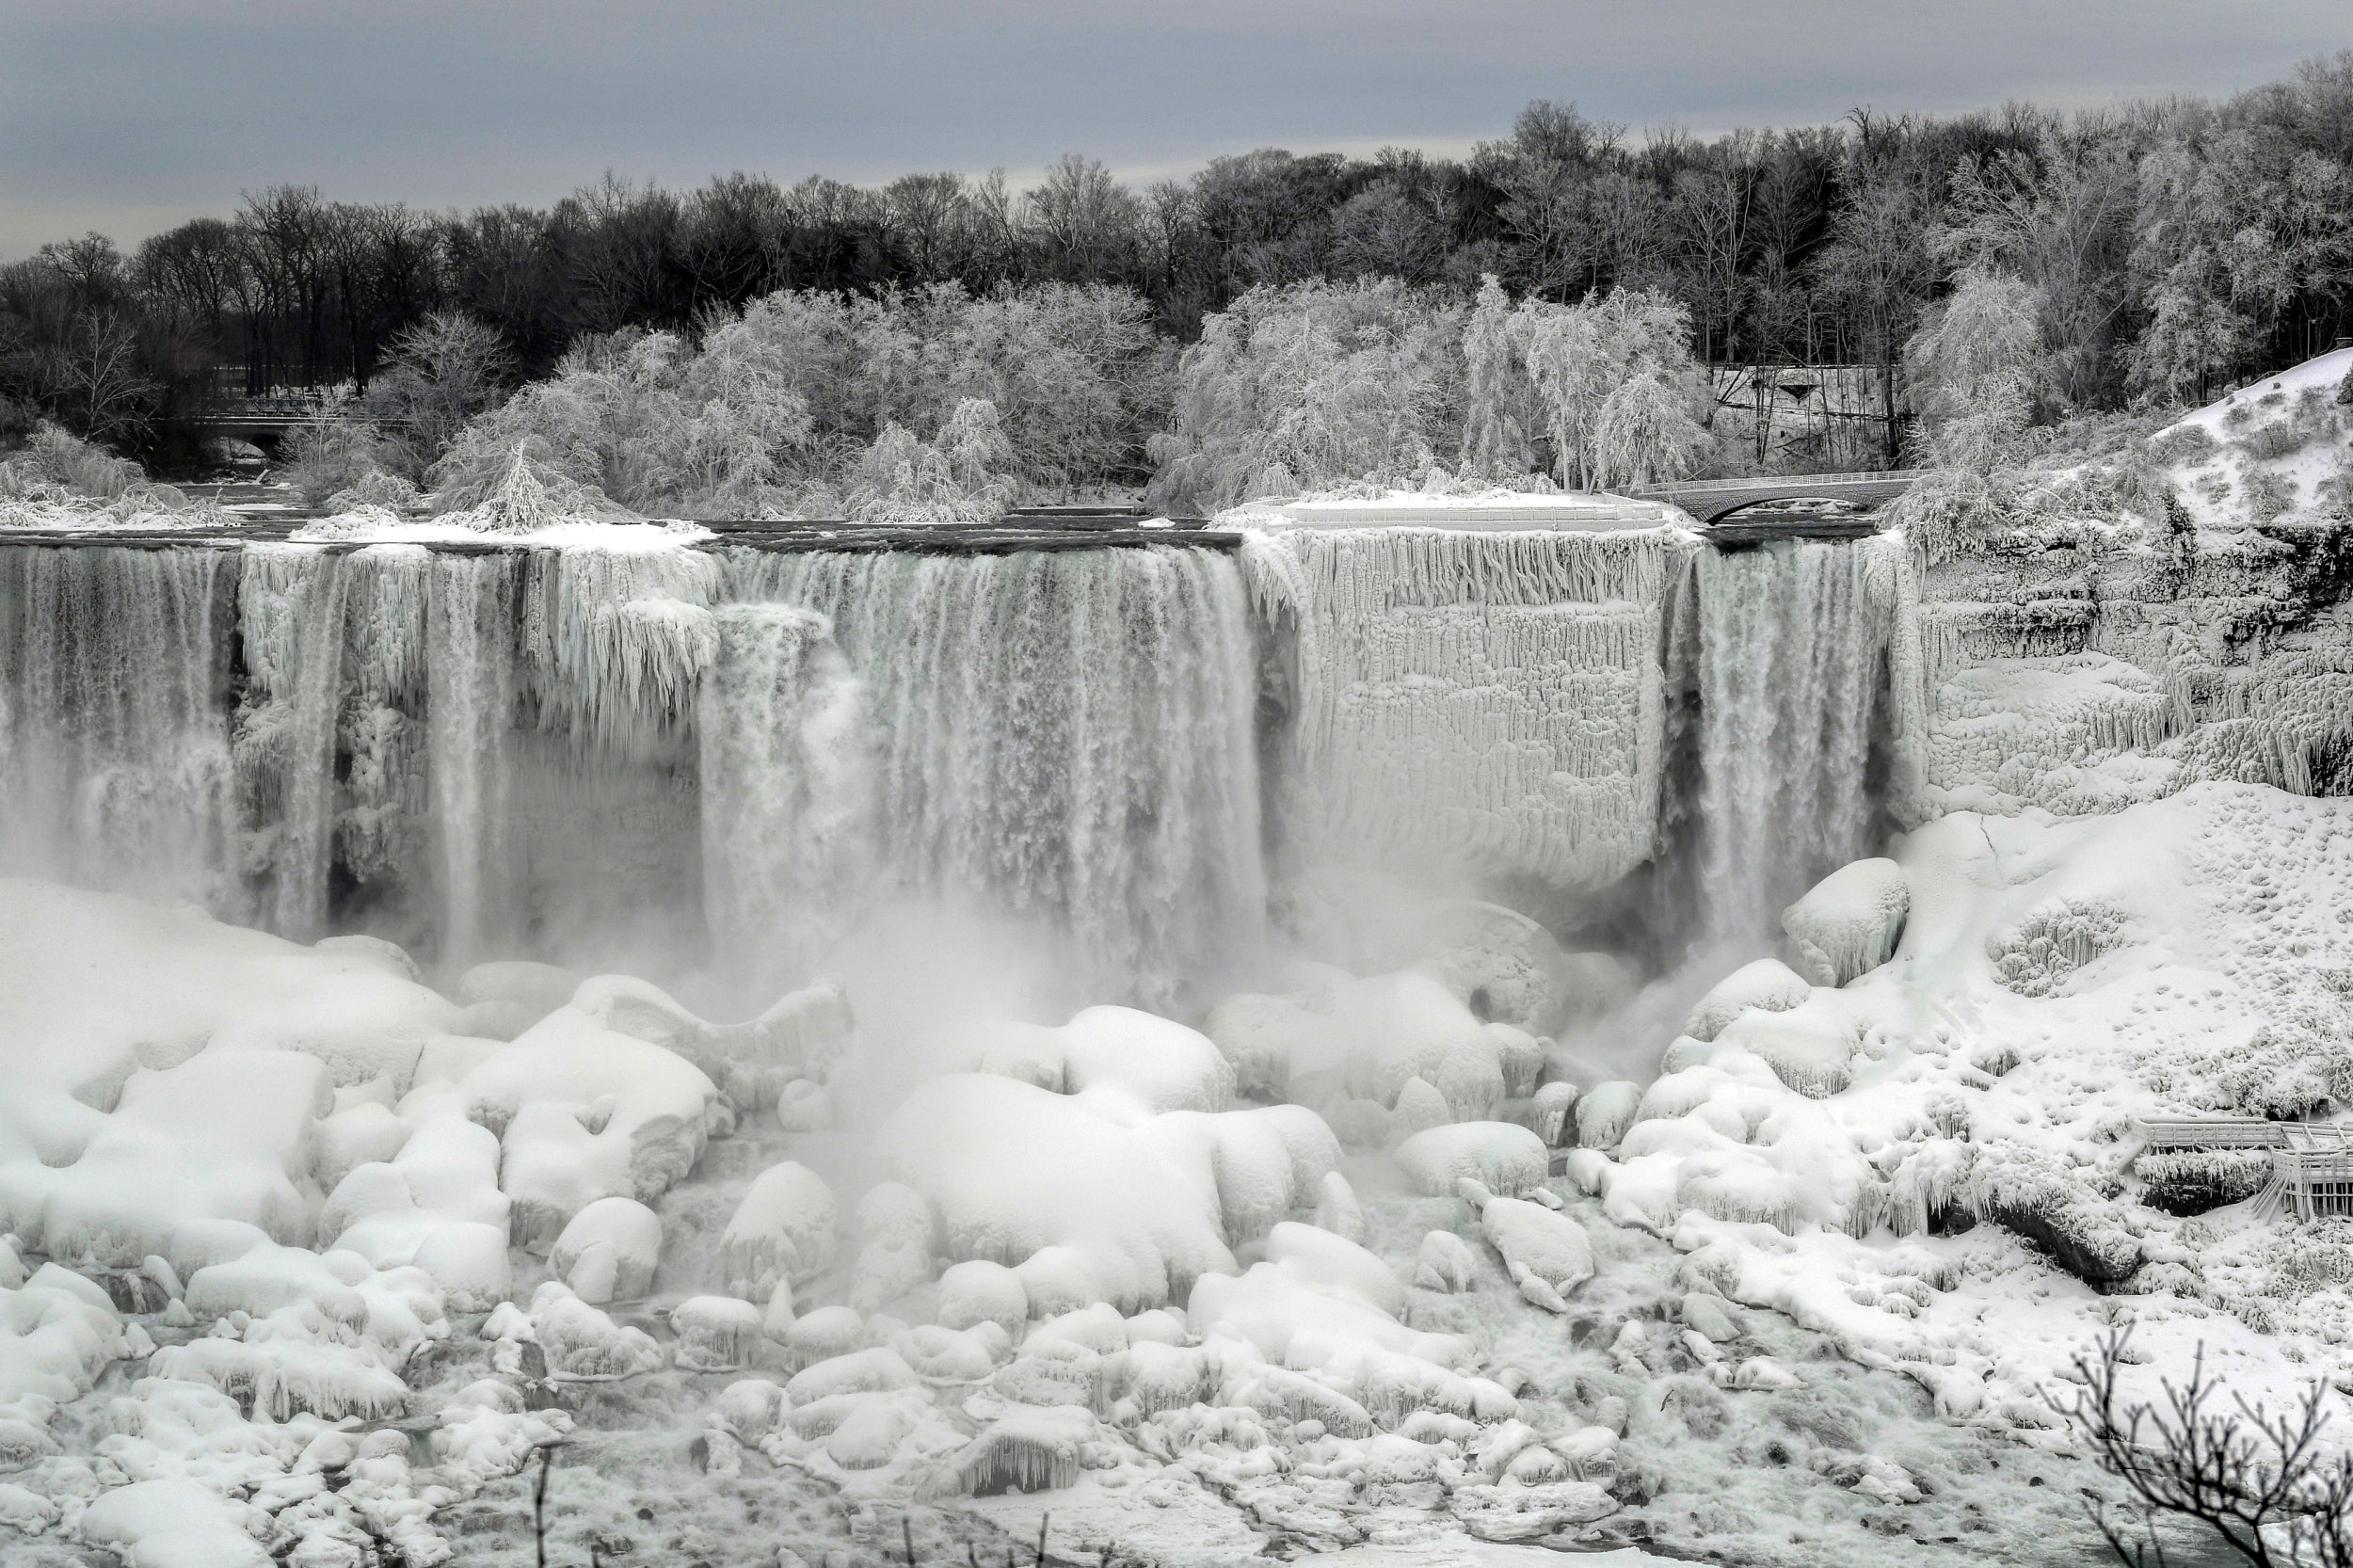 niagara falls turns into winter wonderland as it. Black Bedroom Furniture Sets. Home Design Ideas